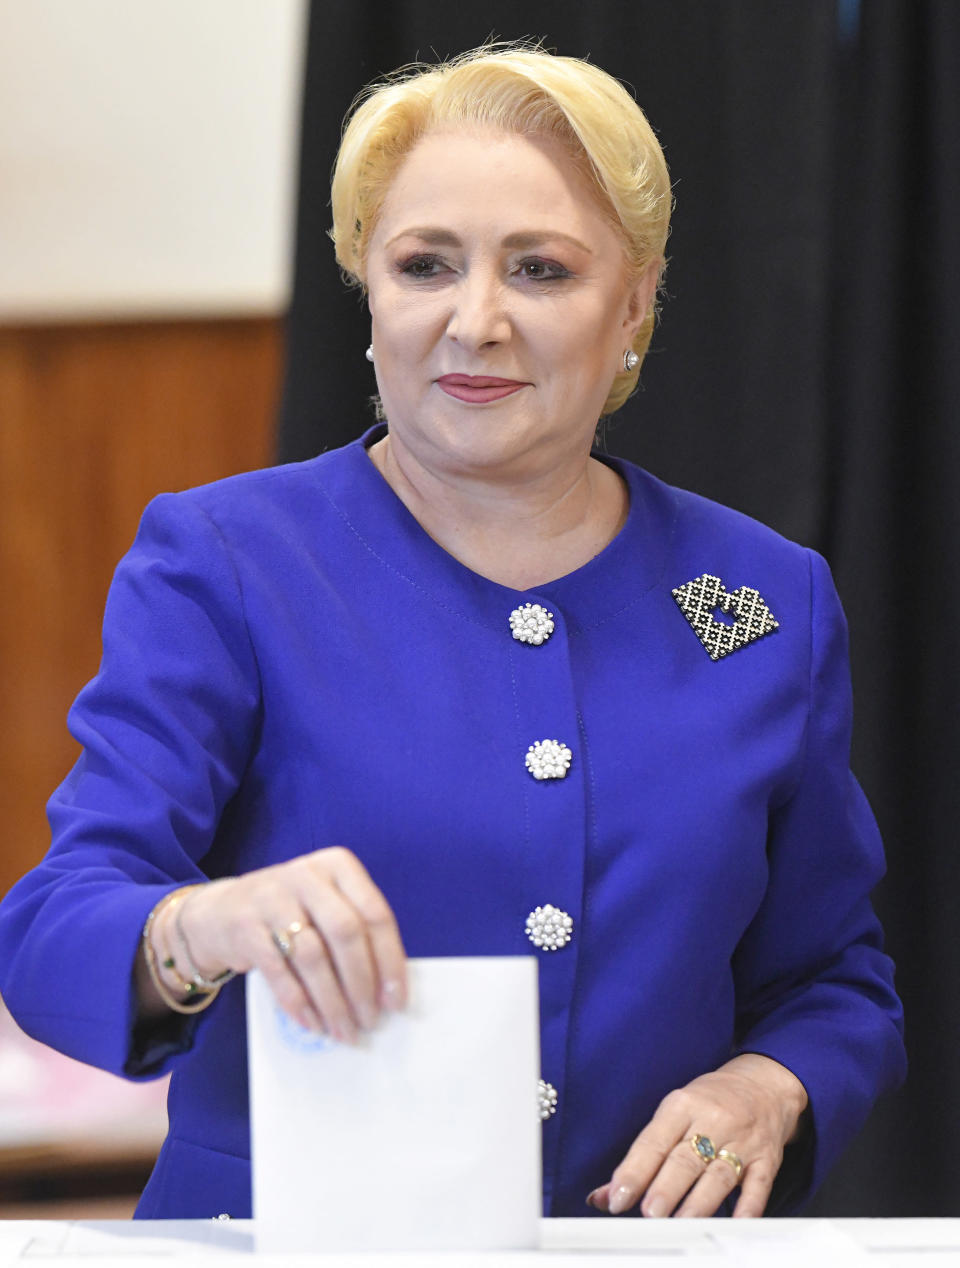 Former Prime Minister and presidential candidate for the Social Democratic party Viorica Dancila casts her vote in Bucharest, Romania, Sunday, Nov. 10, 2019. Voting got underway in Romania's presidential election after a lackluster campaign overshadowed by a political crisis which saw a minority government installed just a few days ago. (AP Photo/Andreea Alexandru)